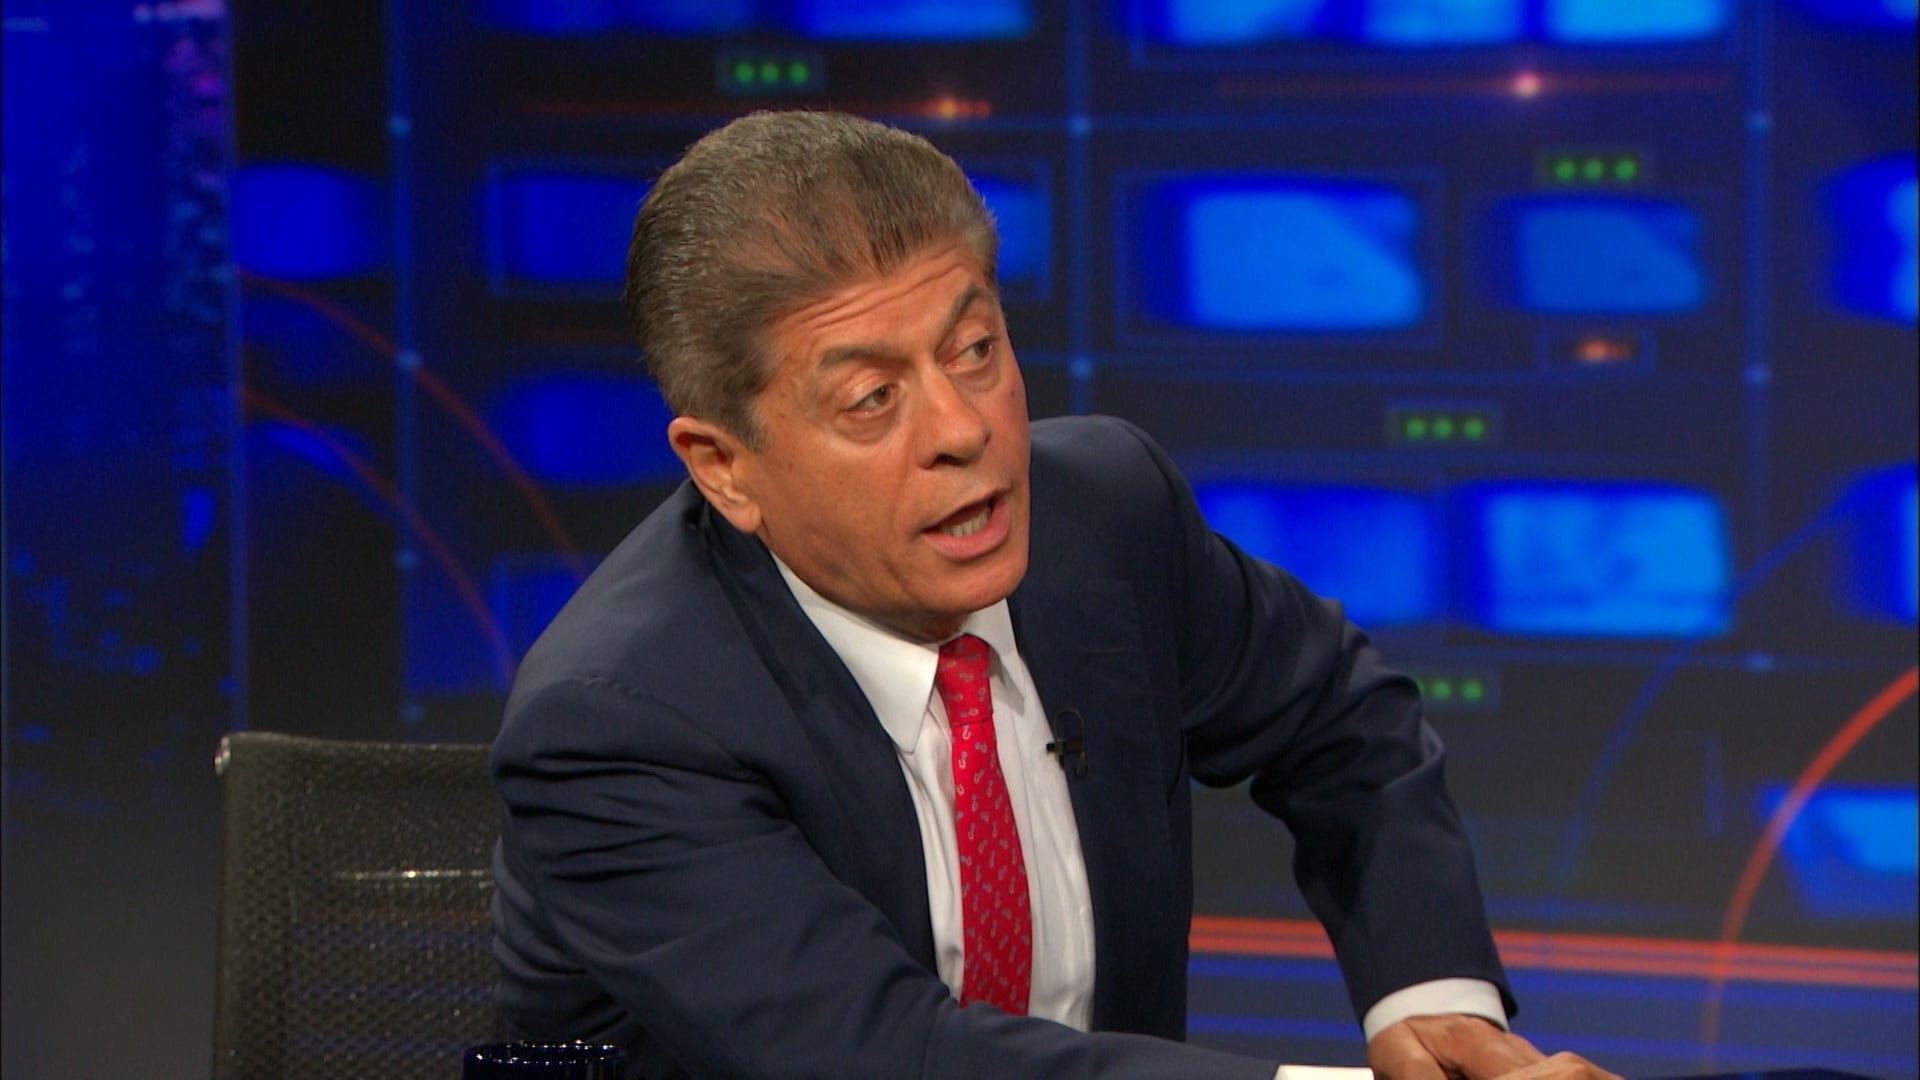 The Daily Show with Trevor Noah Season 20 :Episode 125  Andrew Napolitano